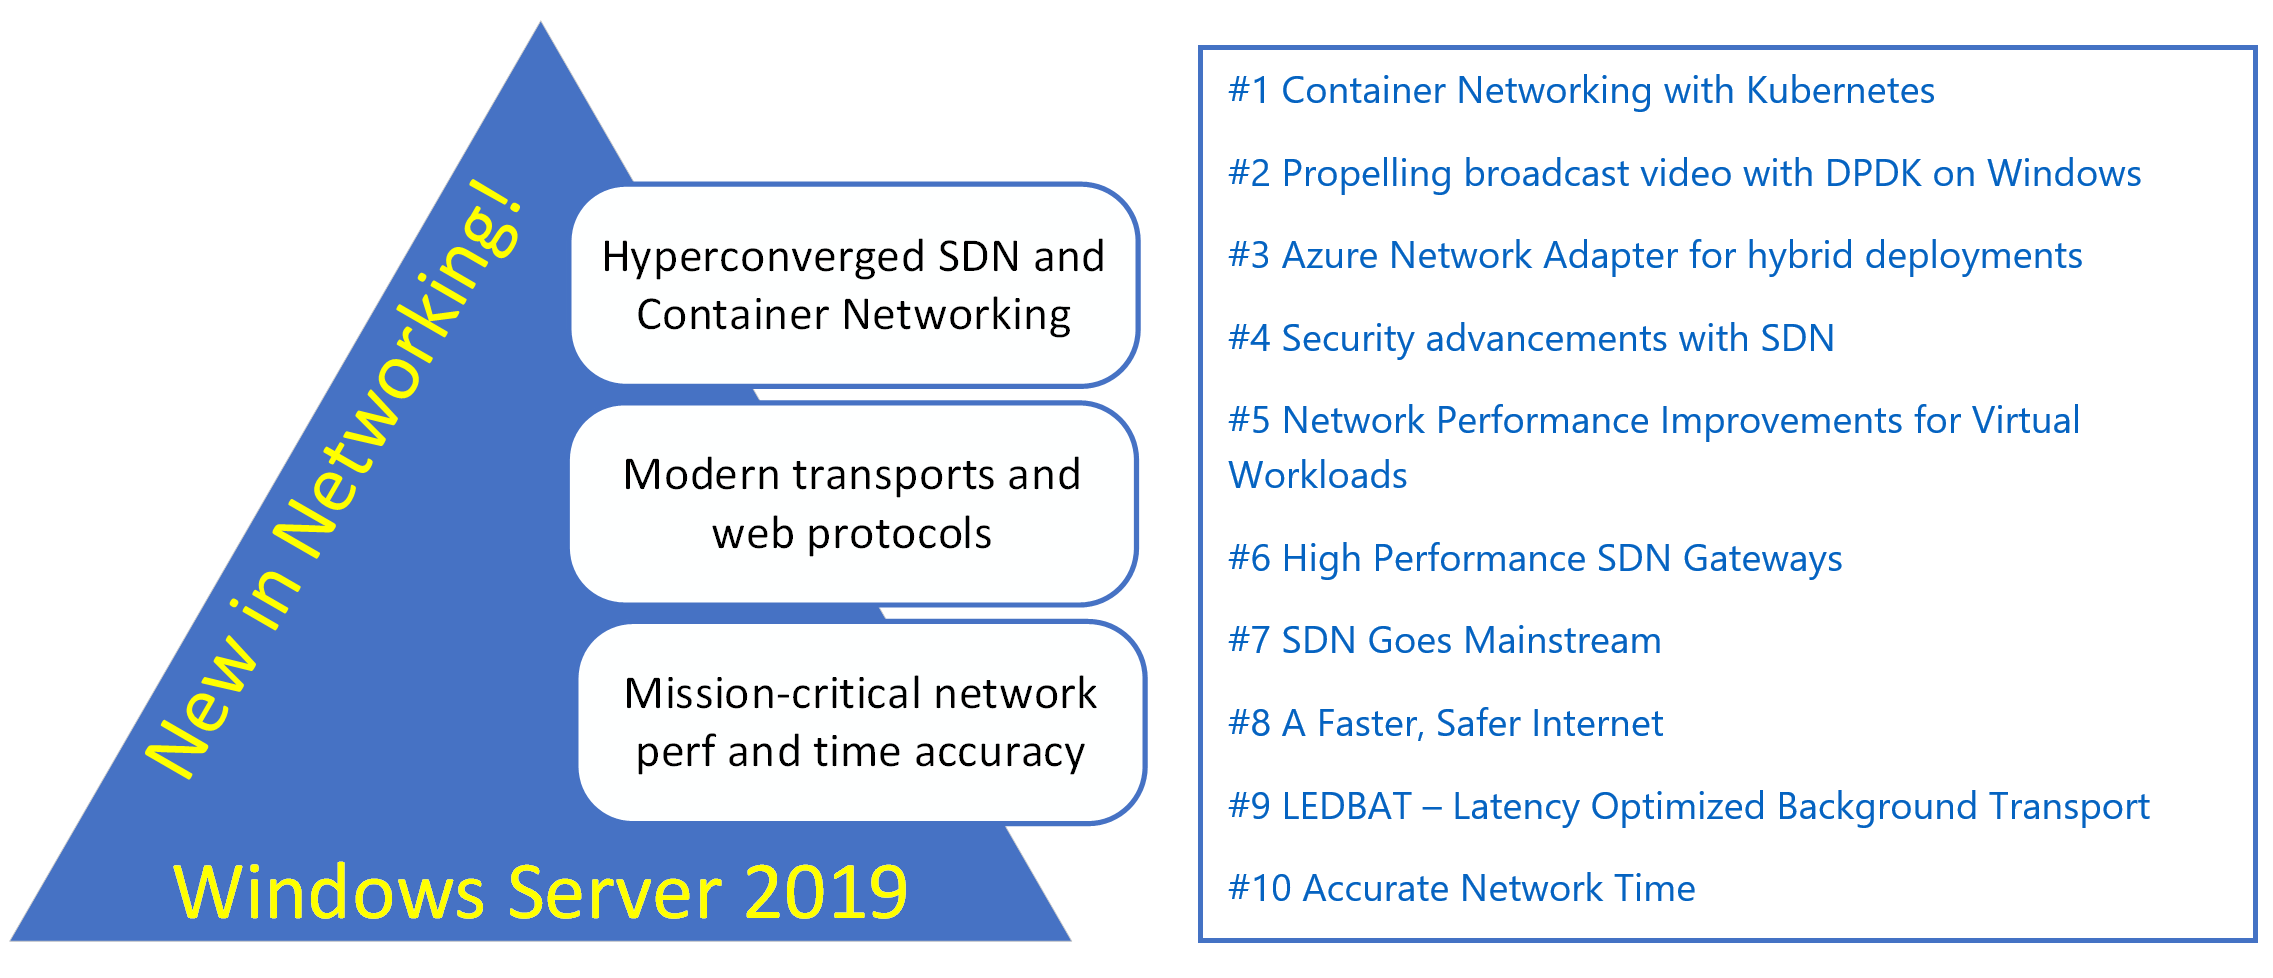 Top 10 Networking Features in Windows Server 2019: Wrapping up!